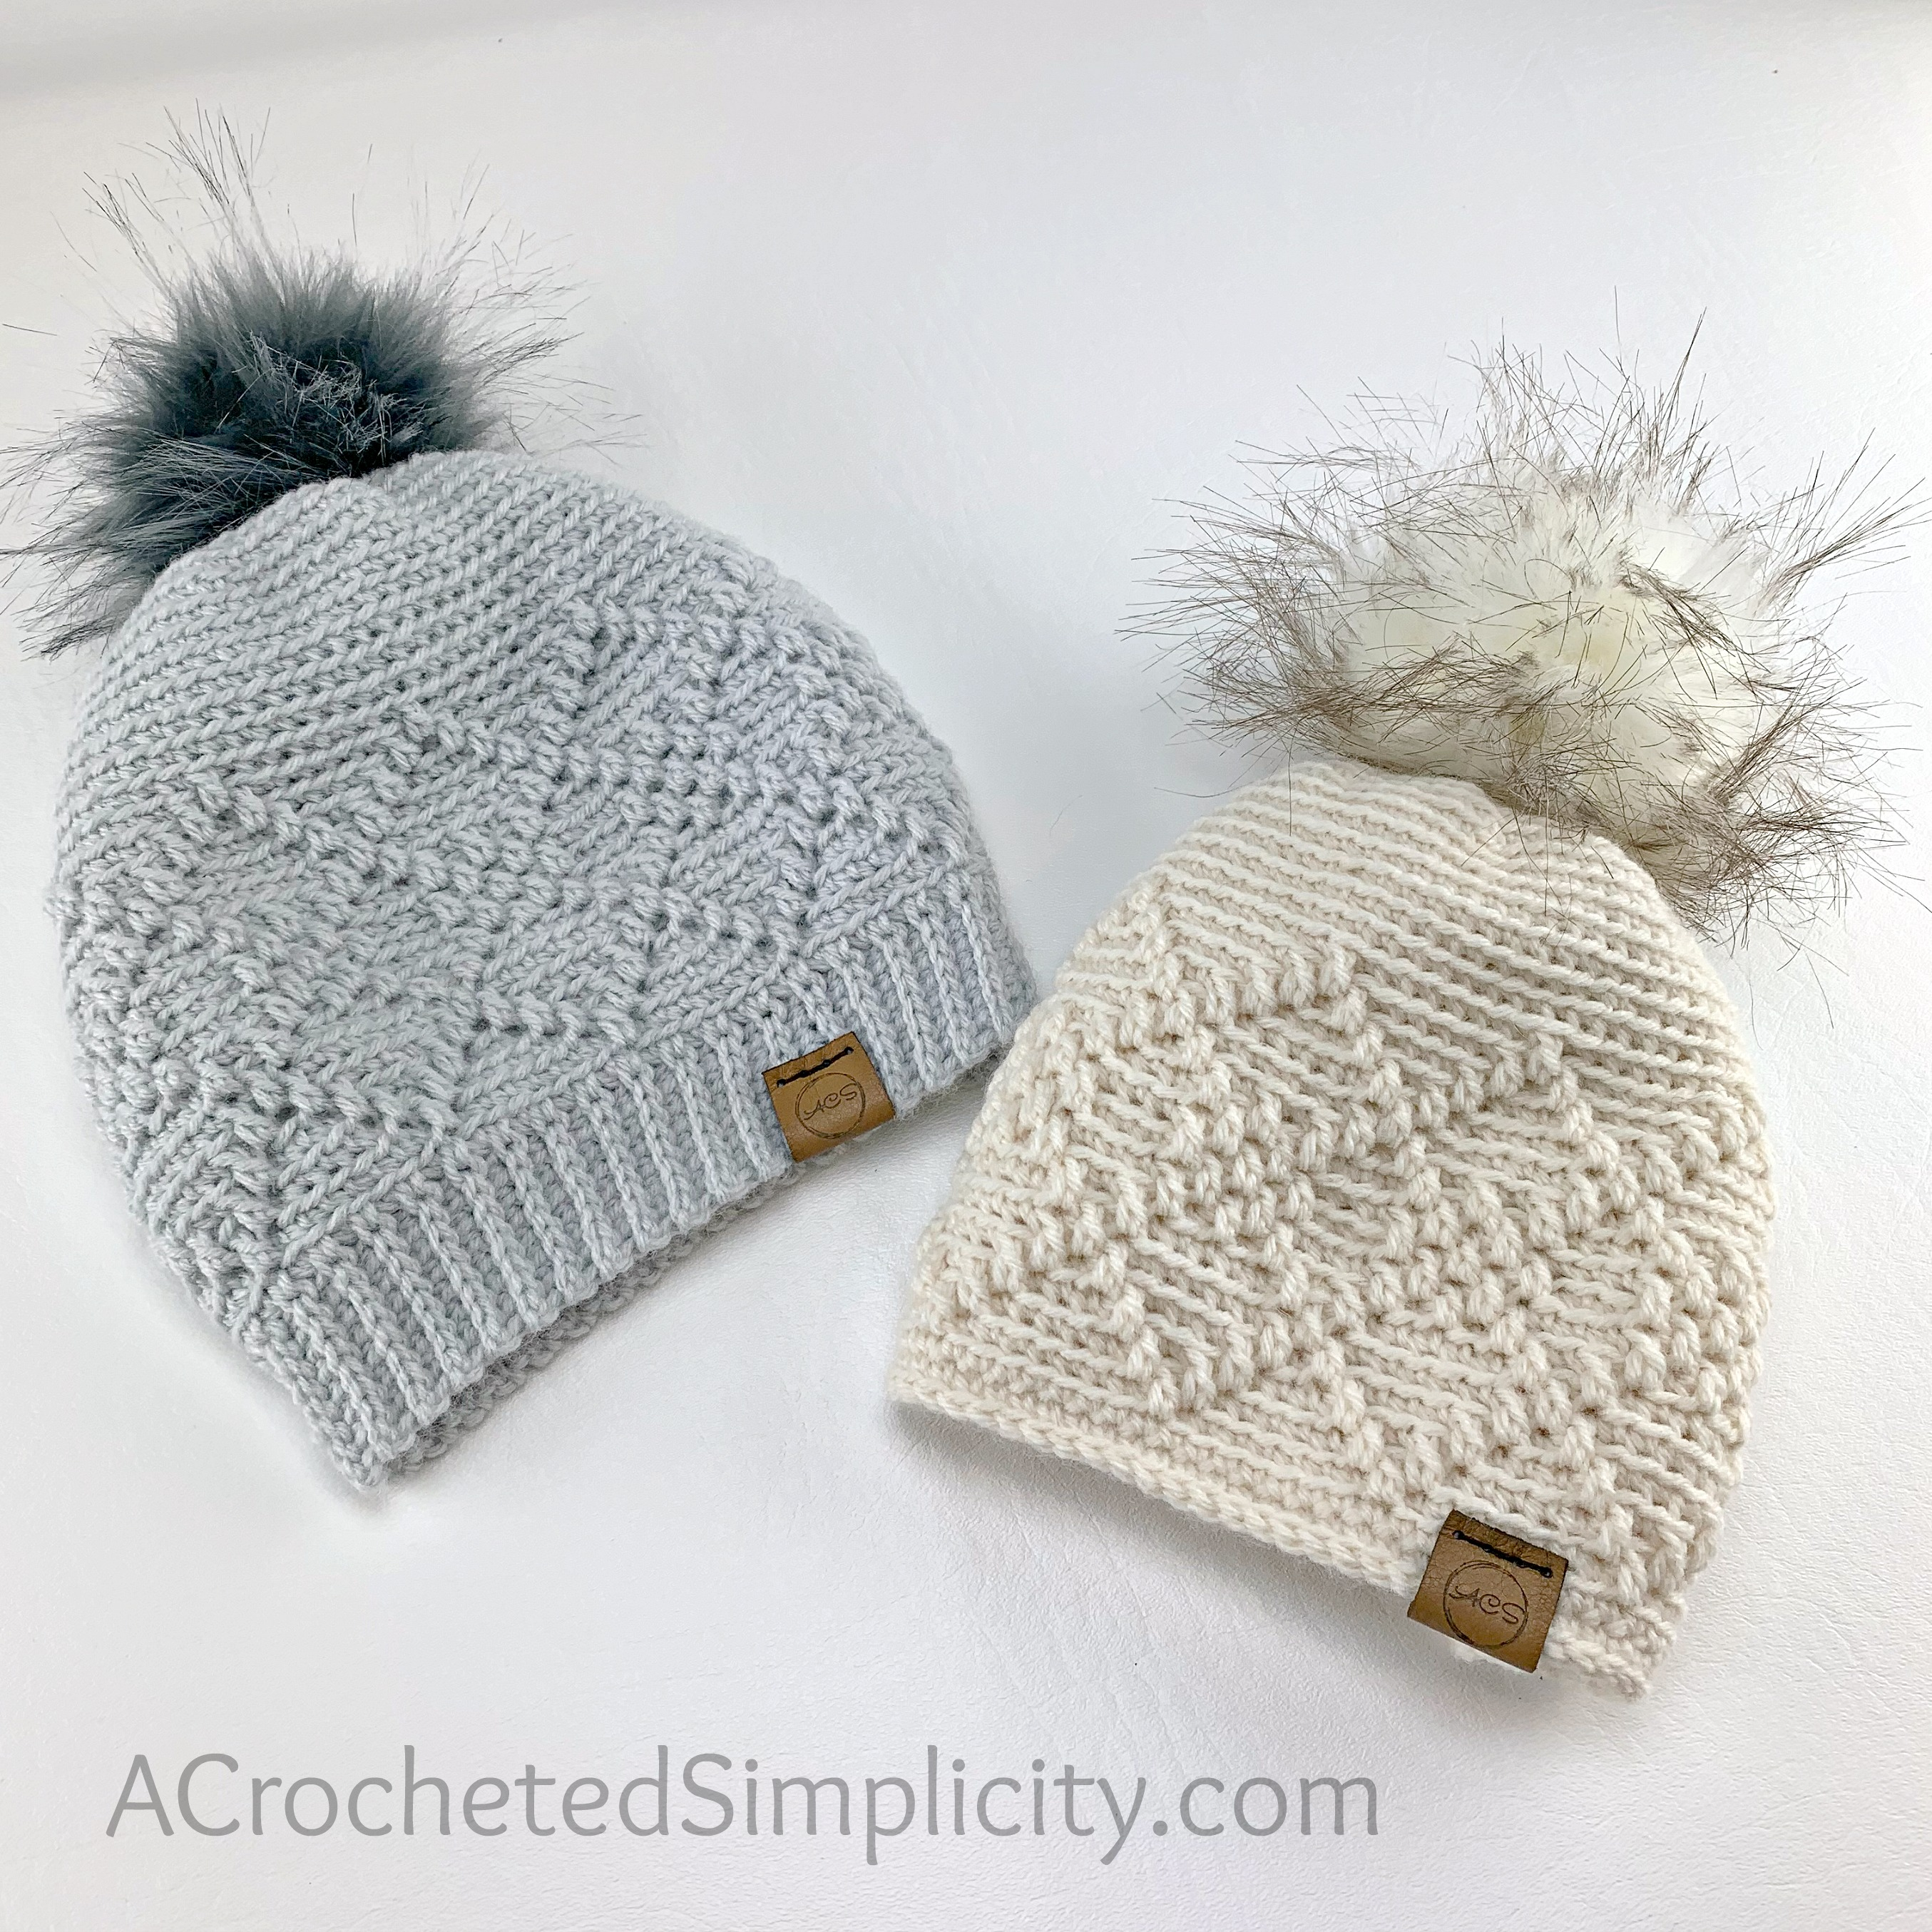 Learn how to crochet the Argyle Beanie & Slouch by A Crocheted Simplicity #freecrochethatpattern #crochetbeaniepattern #crochetbeanie #crochetslouch